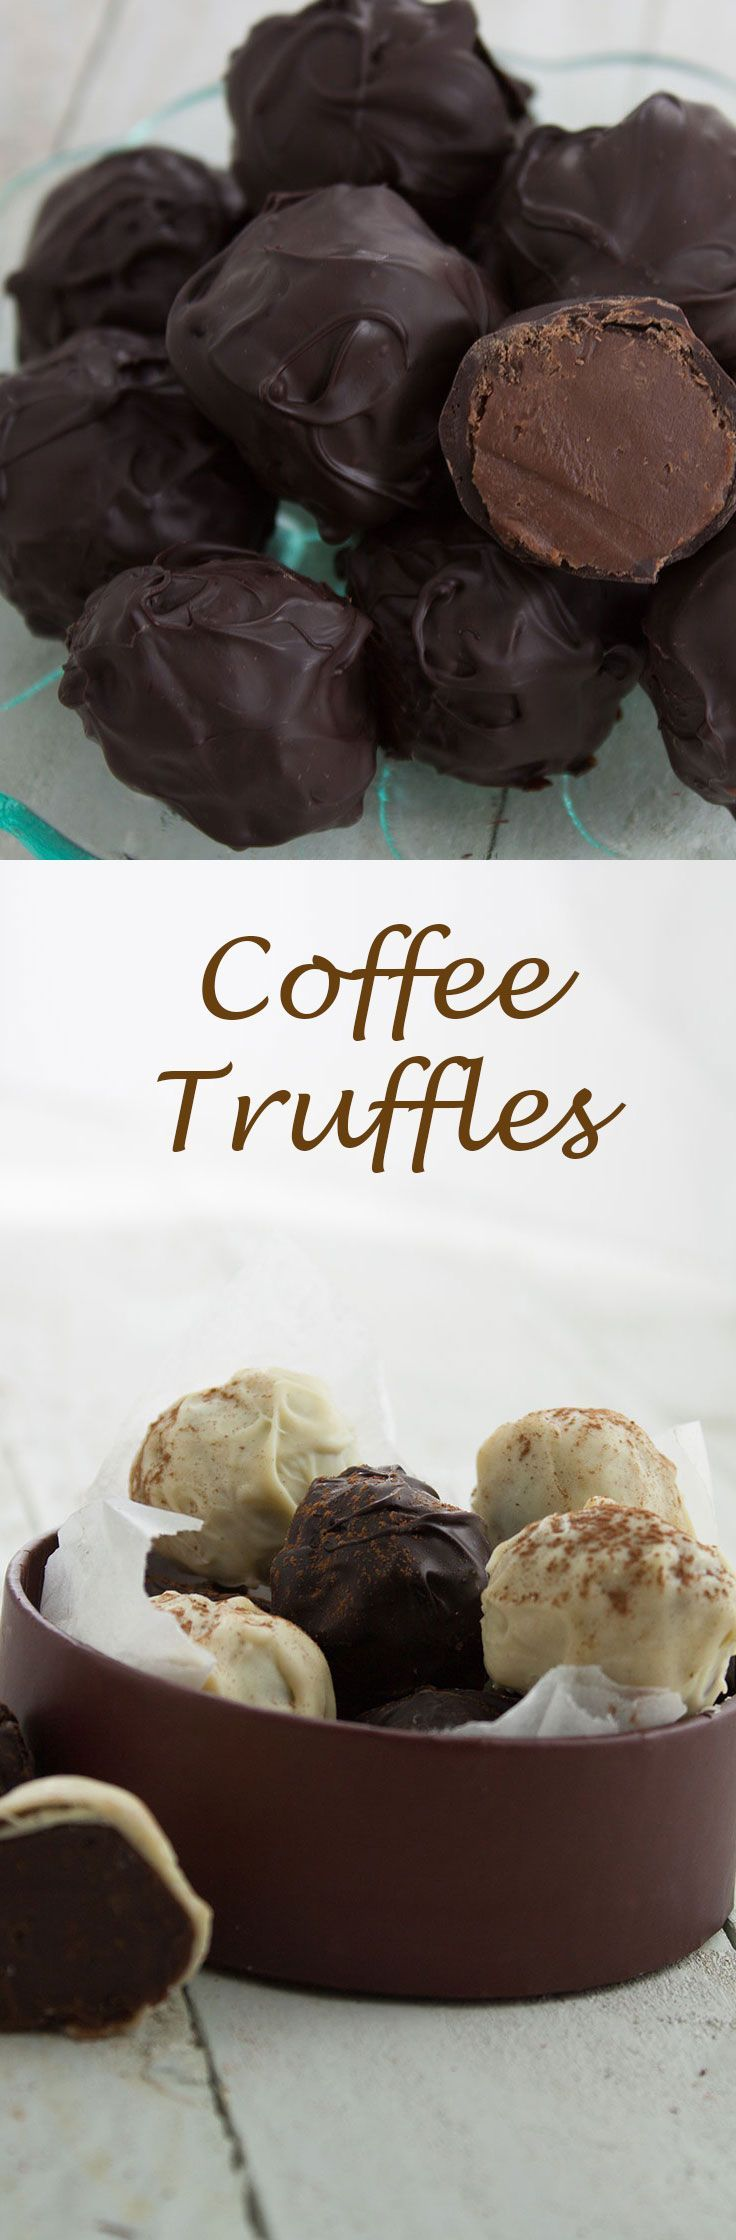 Everyone deserves chocolates. Treat yourself or someone special with these indulgent hand rolled coffee truffles by Recipes Made Easy via @jacdotbee